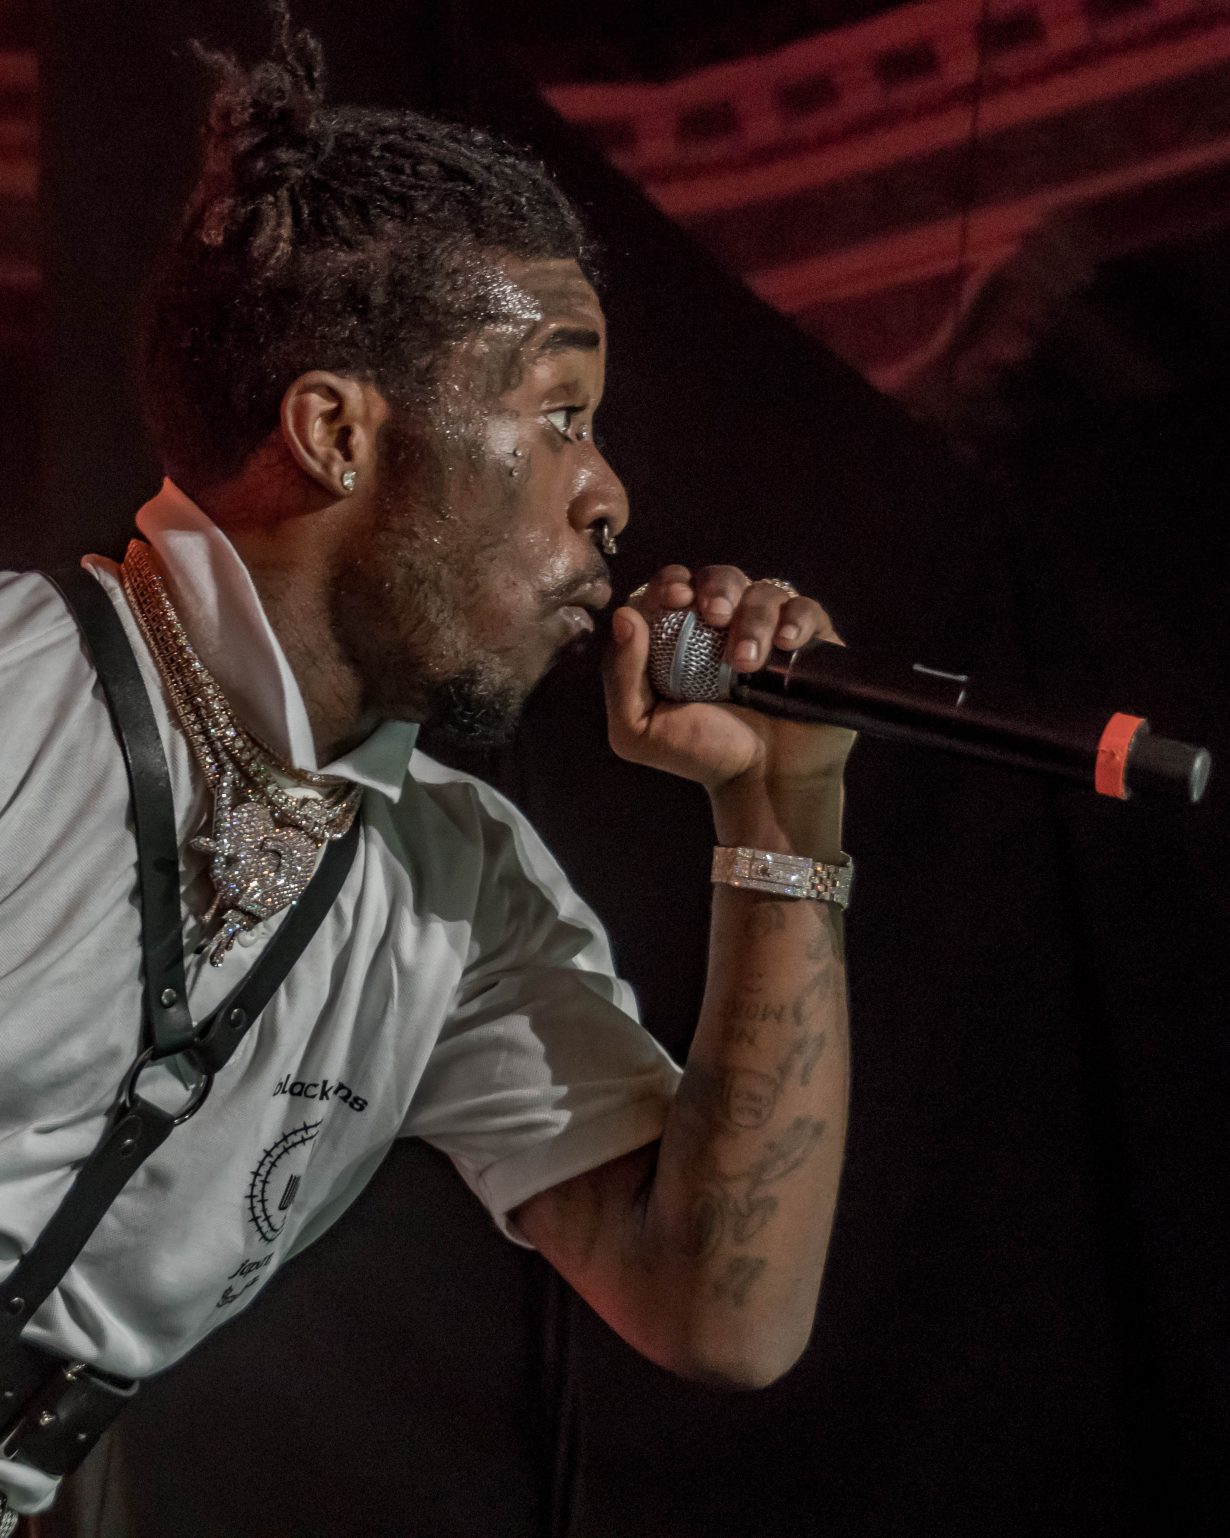 Lil Uzi Vert. RapCaviar Aragon Ballroom 2017 Chicago Il. Photo by Kevin Baker 16 1230x1538 RapCaviar Sets Chicago On Fire with Lil Uzi Vert, Playboi Carti, Cardi B, DJ Drama and More